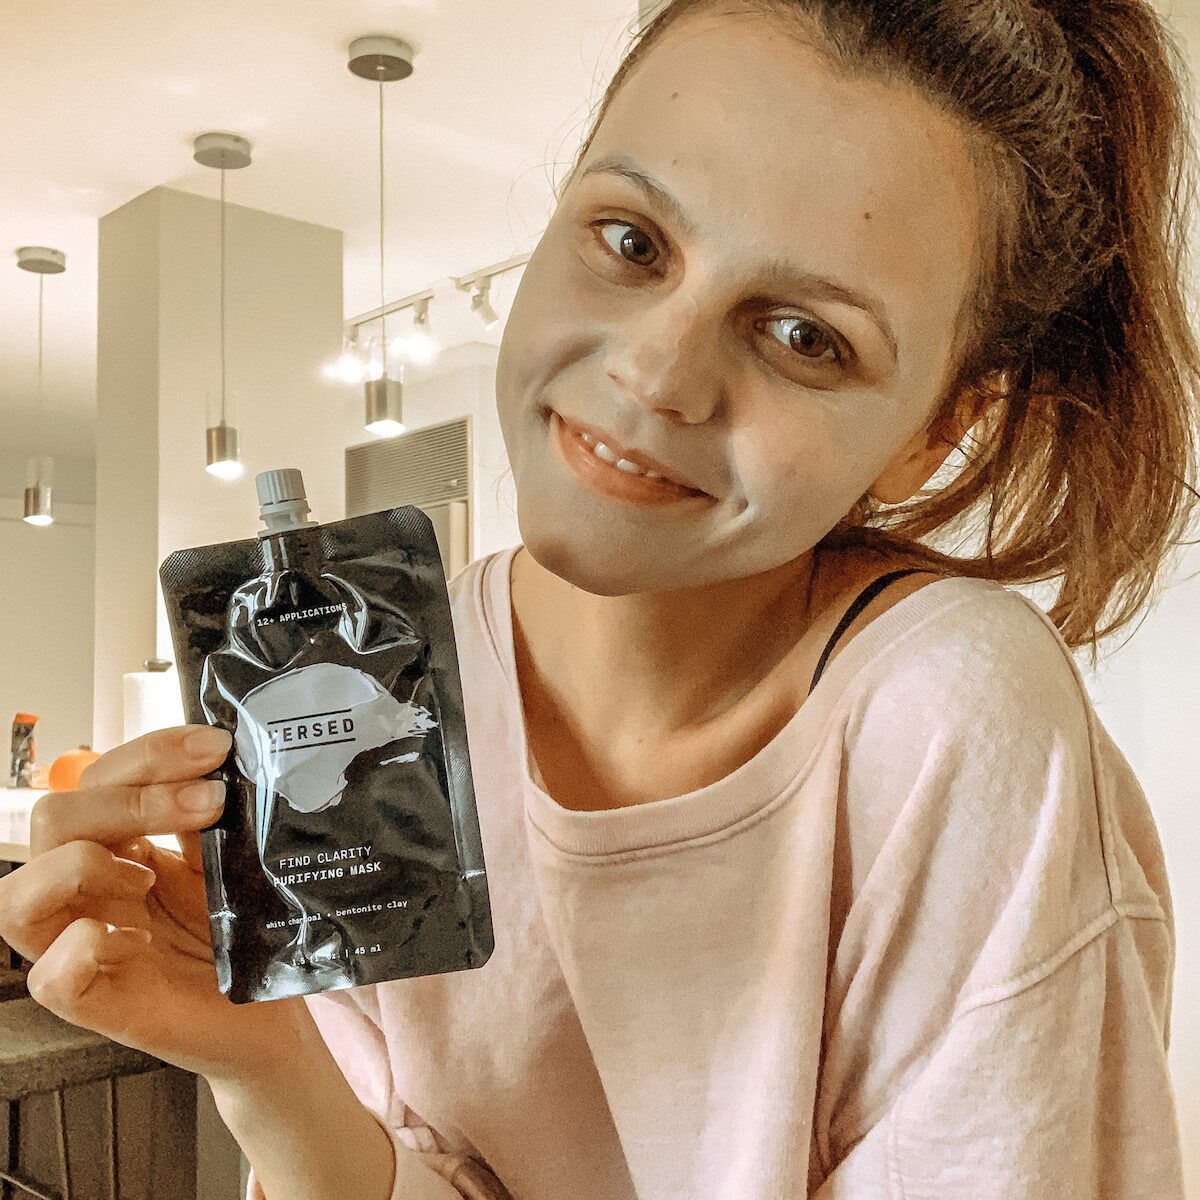 Versed Masks Review